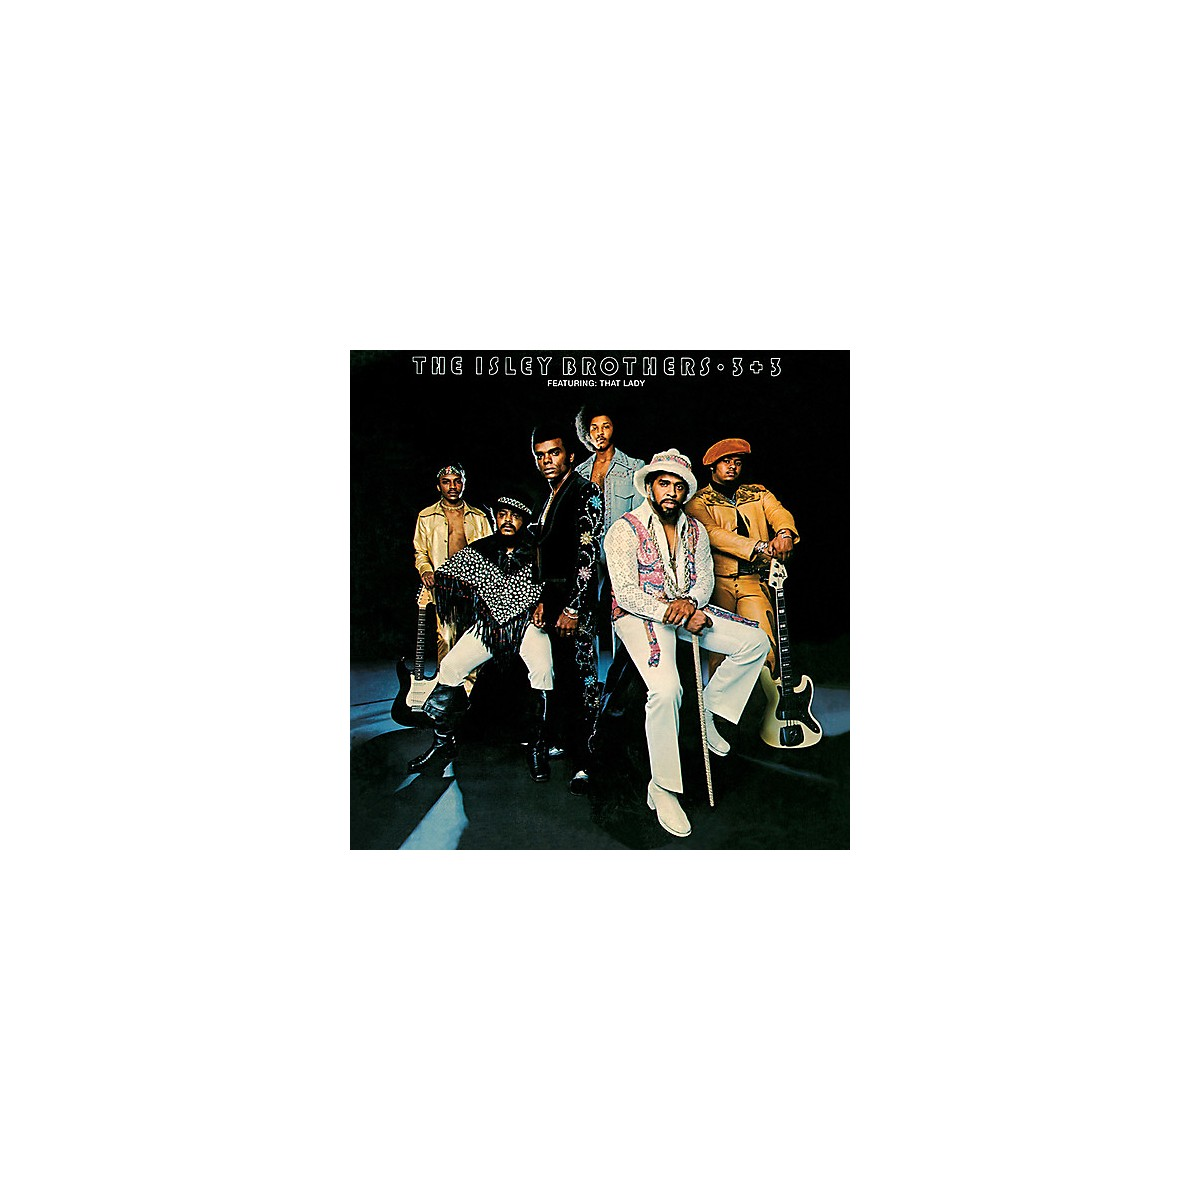 Alliance The Isley Brothers - 3+3